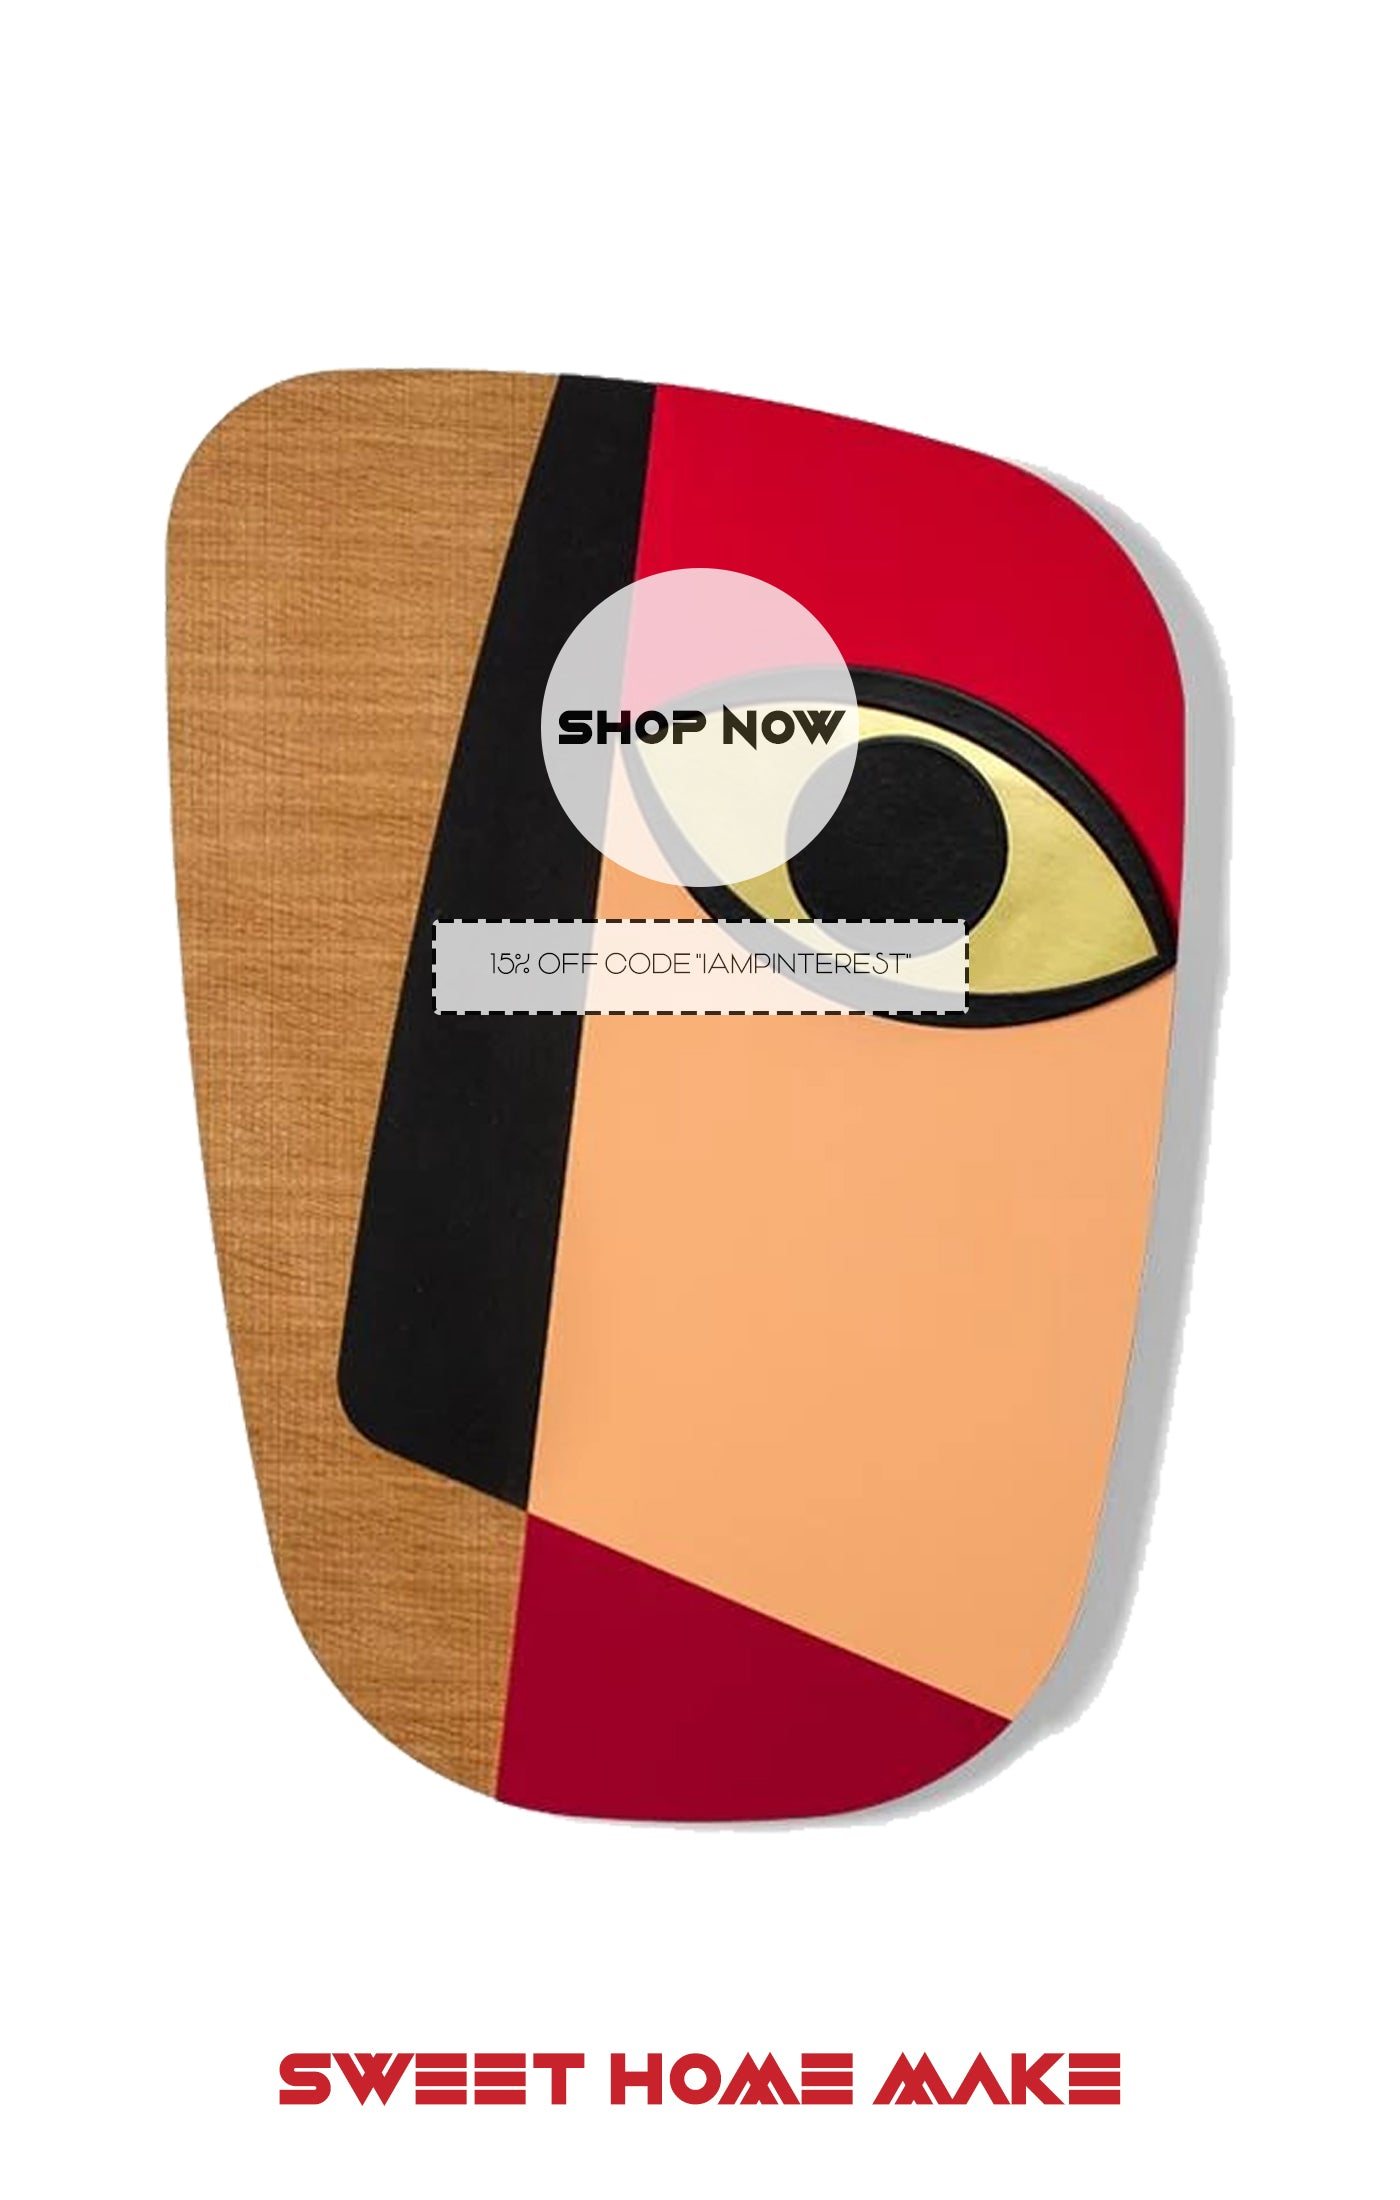 Abstract Wall Art as Home Decor Store